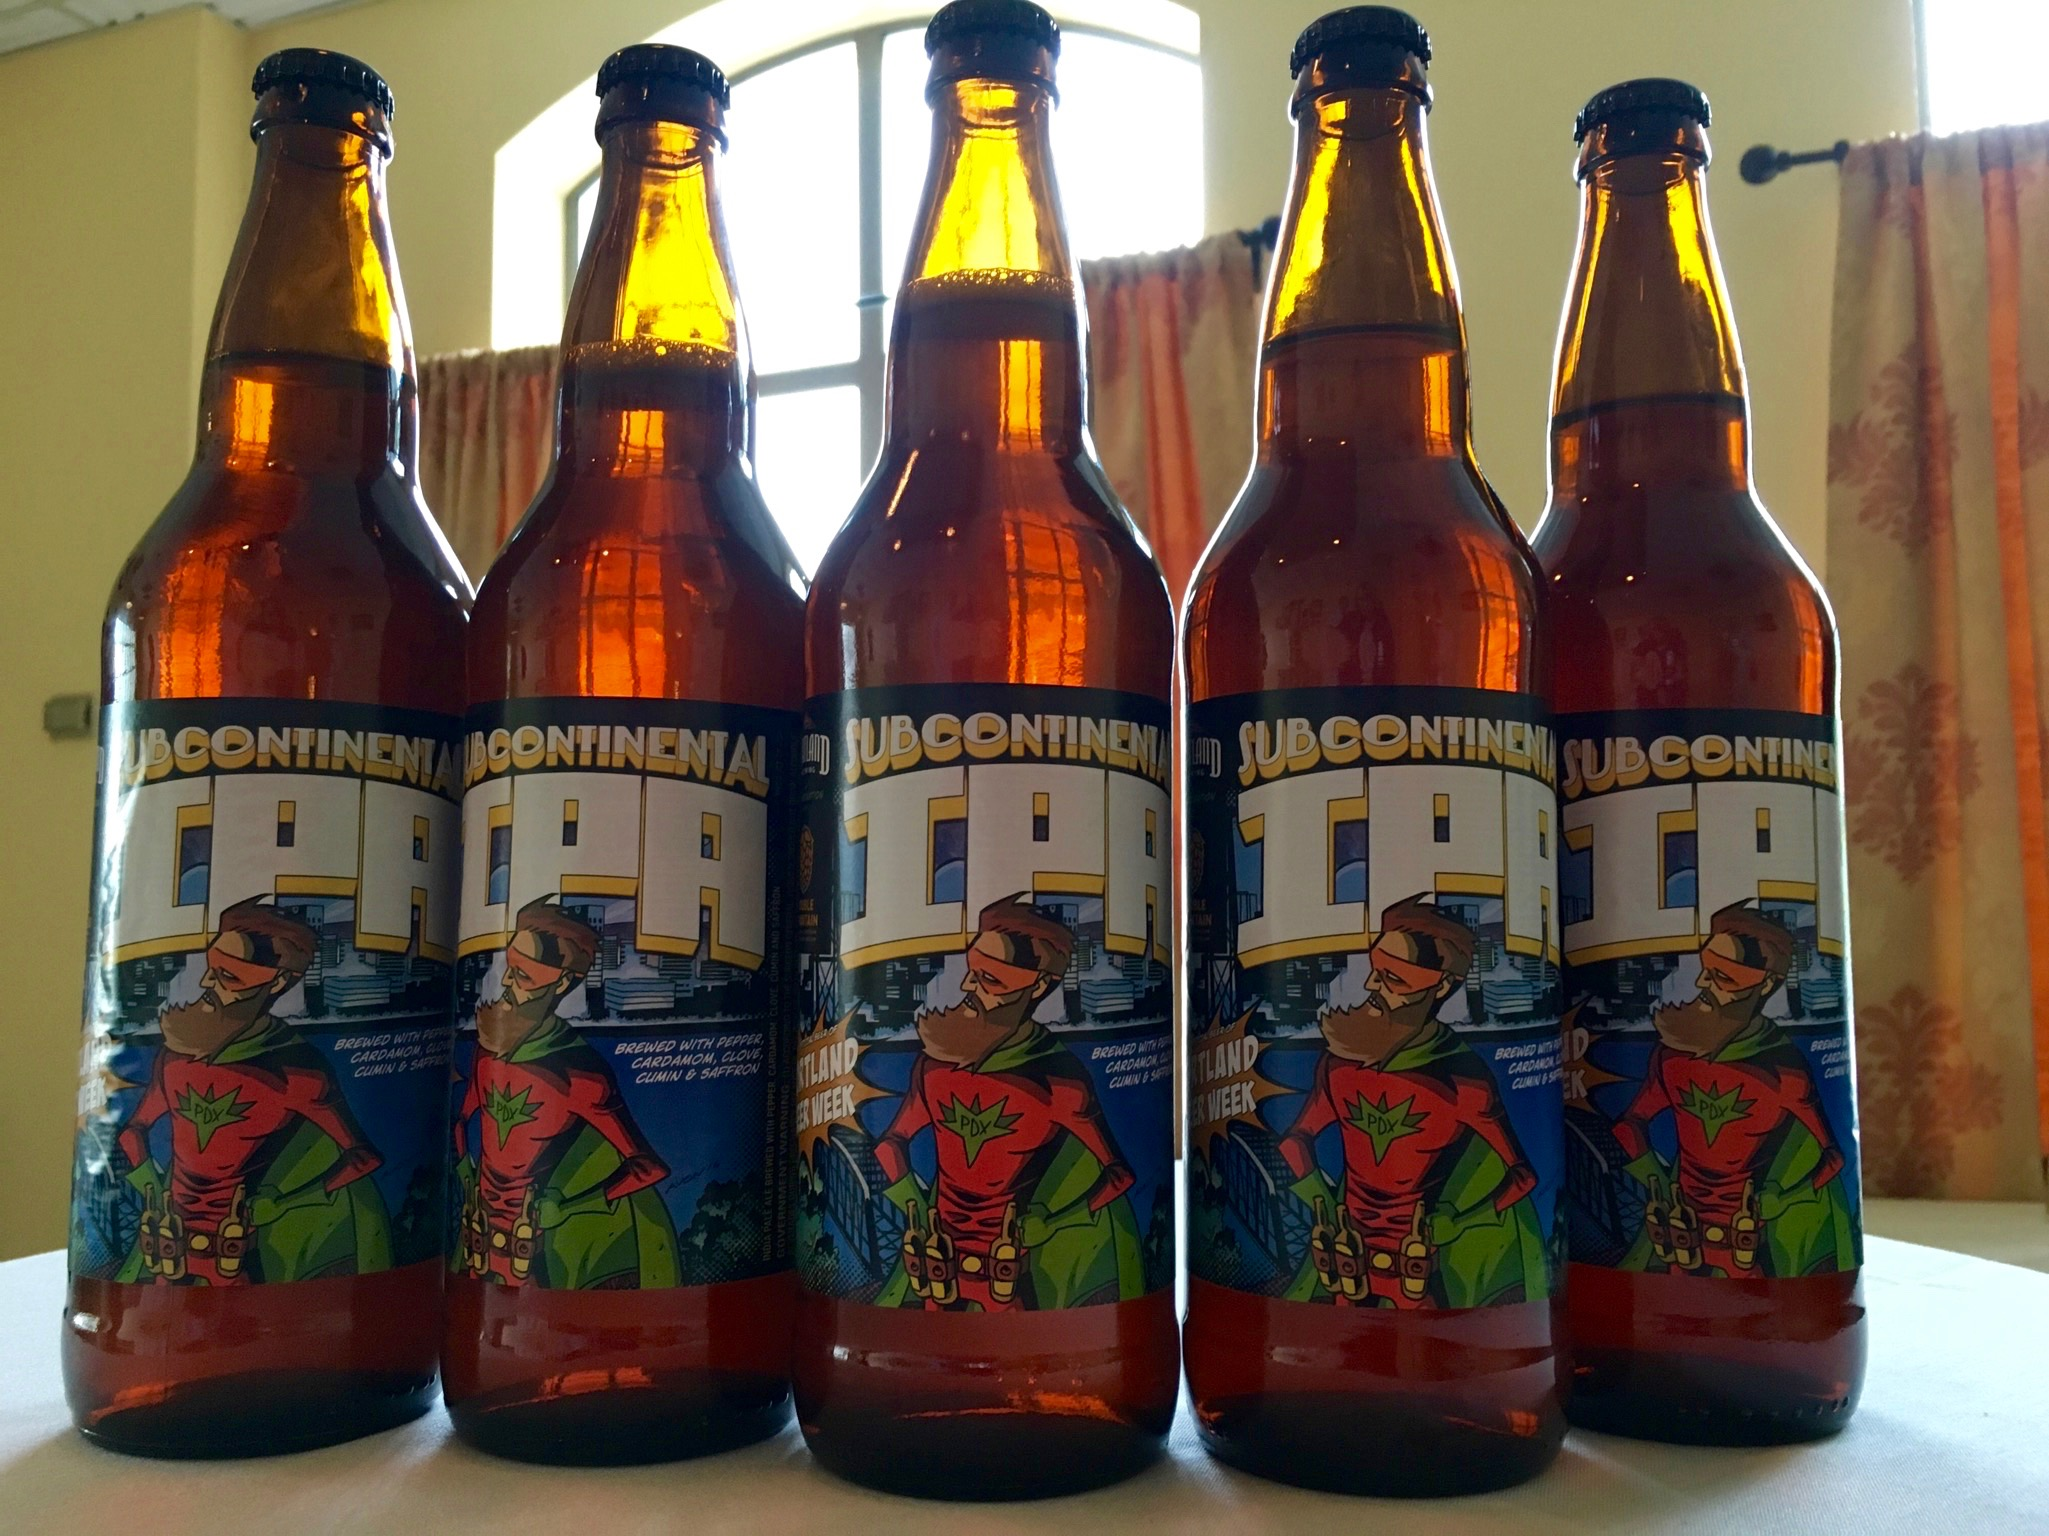 Bottles of Portland Brewing and Double Mountain Subcontinental IPA. (photo by Cat Stelzer)